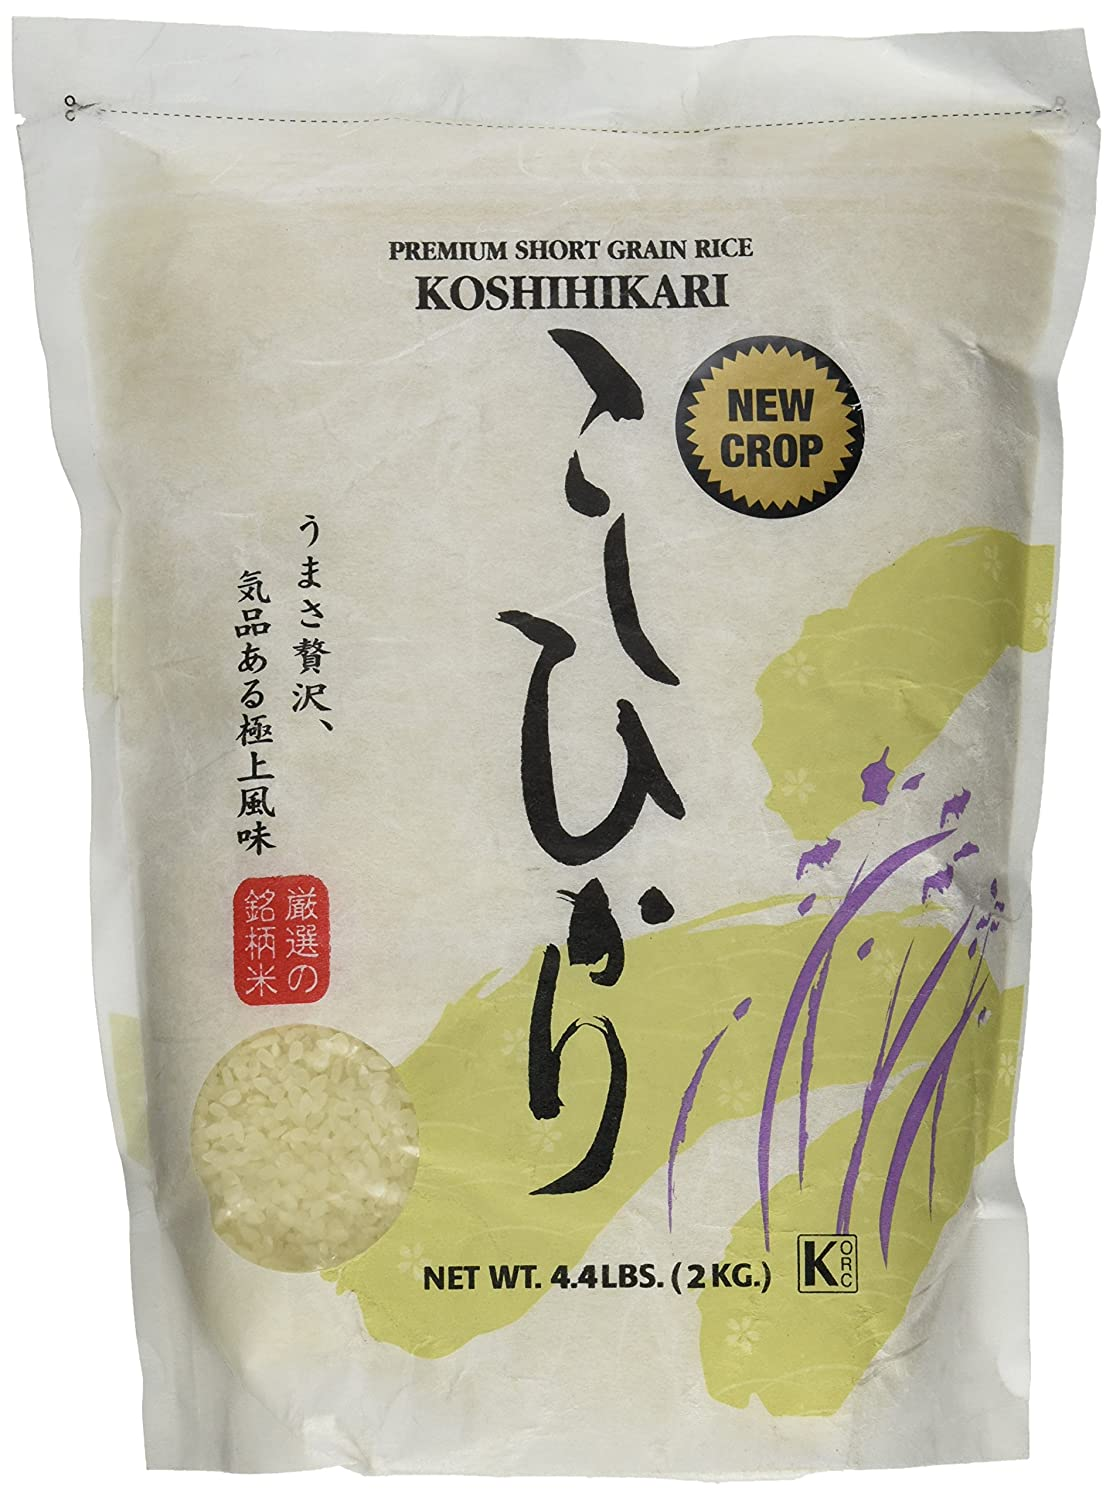 Arroz koshihikari 4,4 Lb (pack de 1): Amazon.com ...